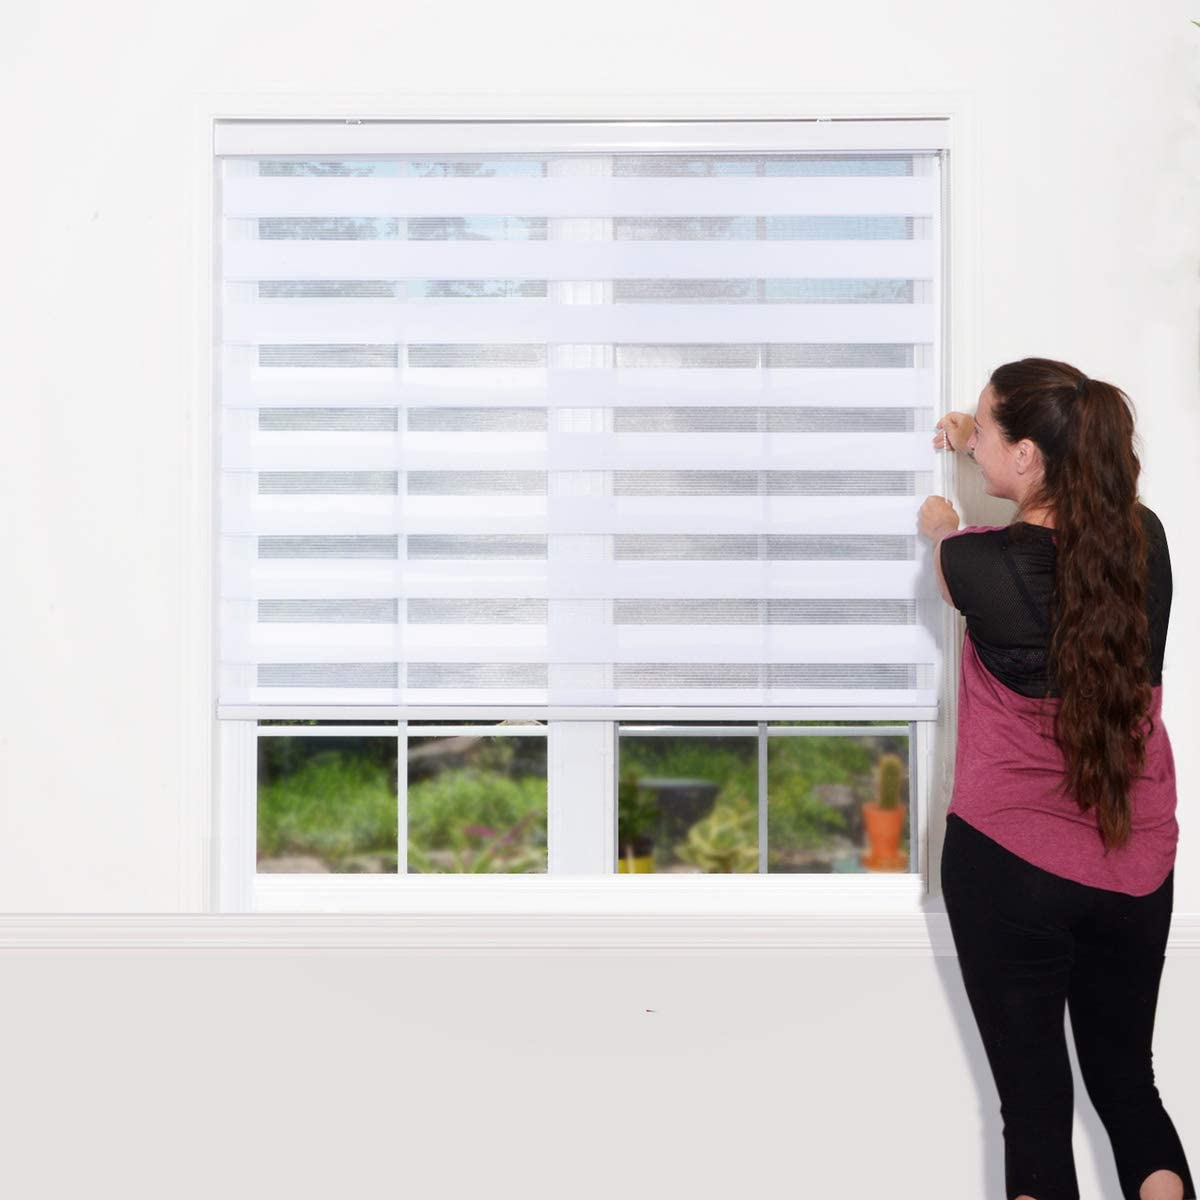 WYMO Zebra Blinds for Windows – 50 x 64 inch – Sheer Horizontal Window Blinds and Shades for Daytime and Nighttime – Light Filtering Roller Shades with White Valence, 20 to 72 inch Wide